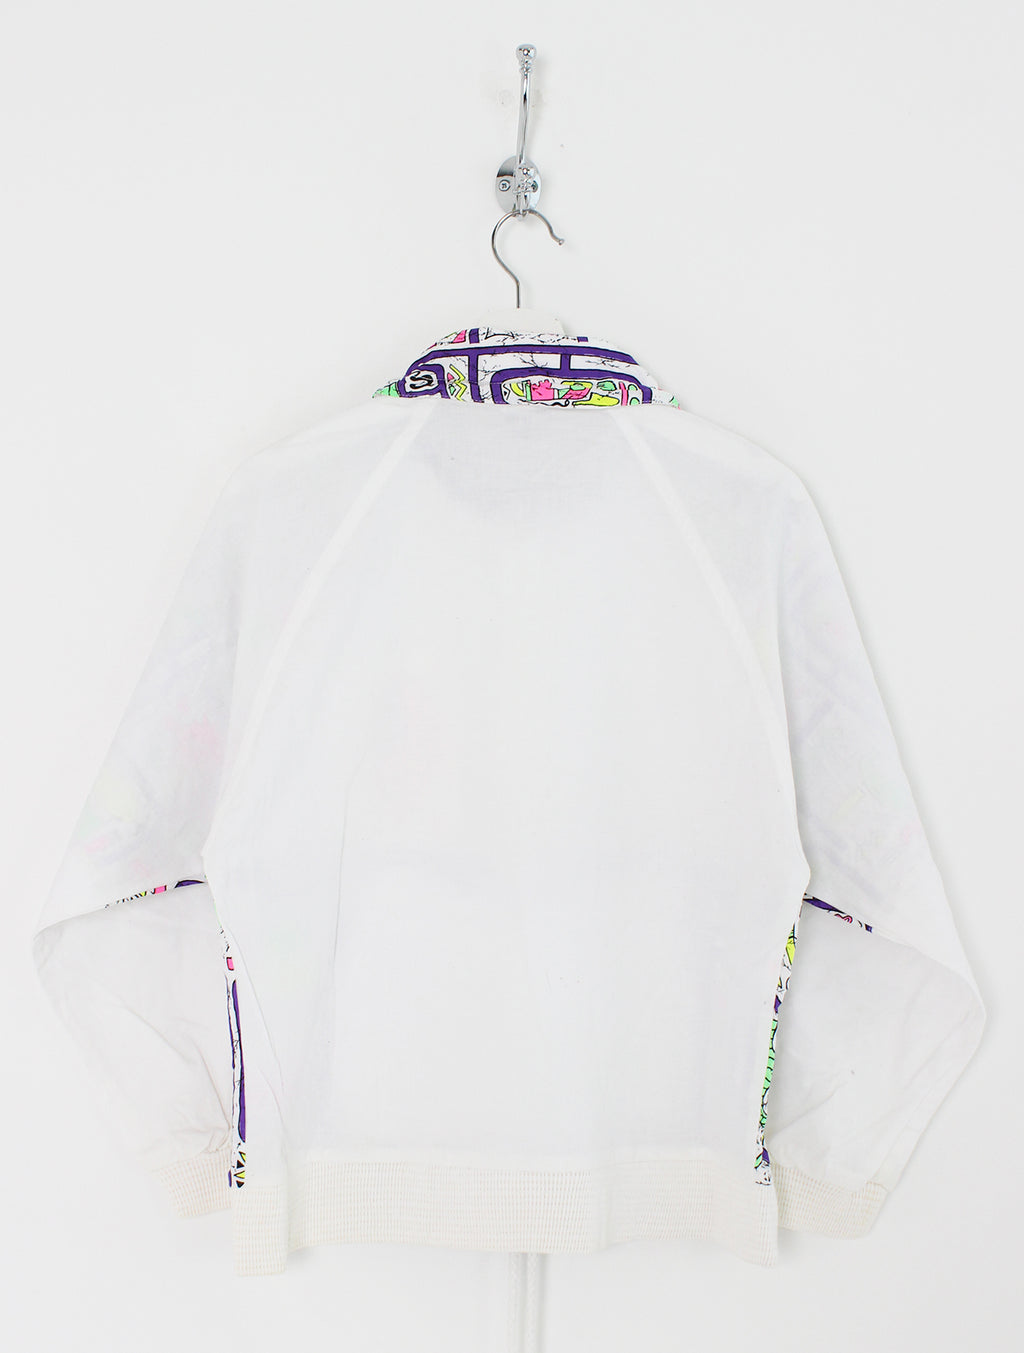 Jackie O Beach Wear Pullover (S)